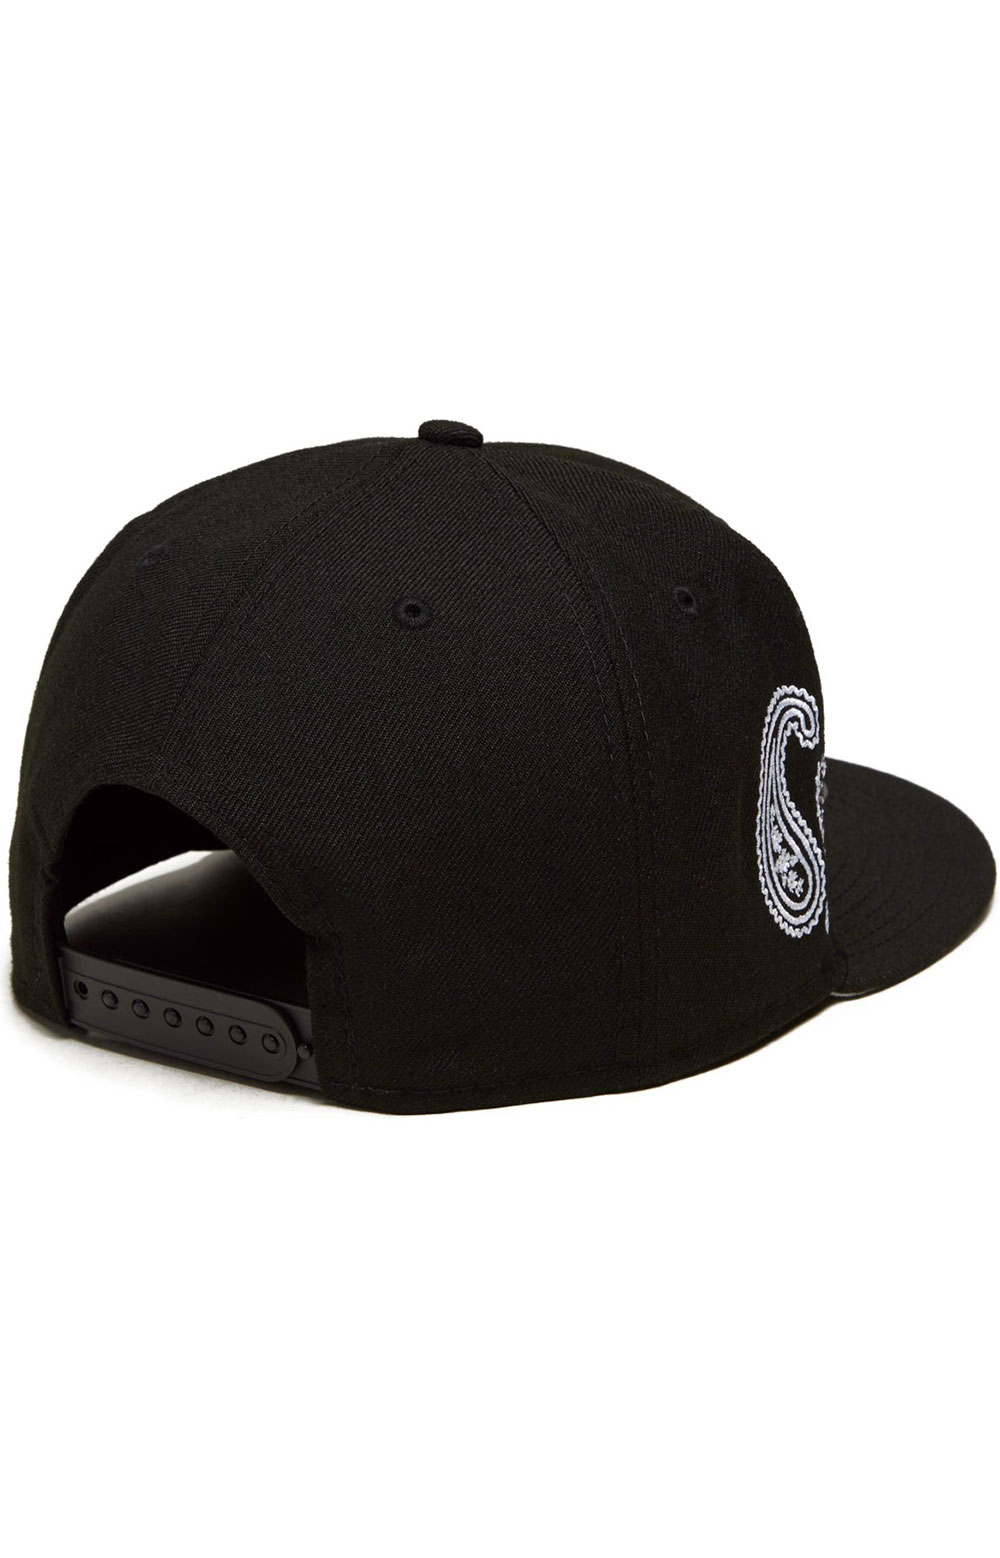 Los Angeles Dodgers Paisley Elements 59Fifty Fitted Hat - Black  3